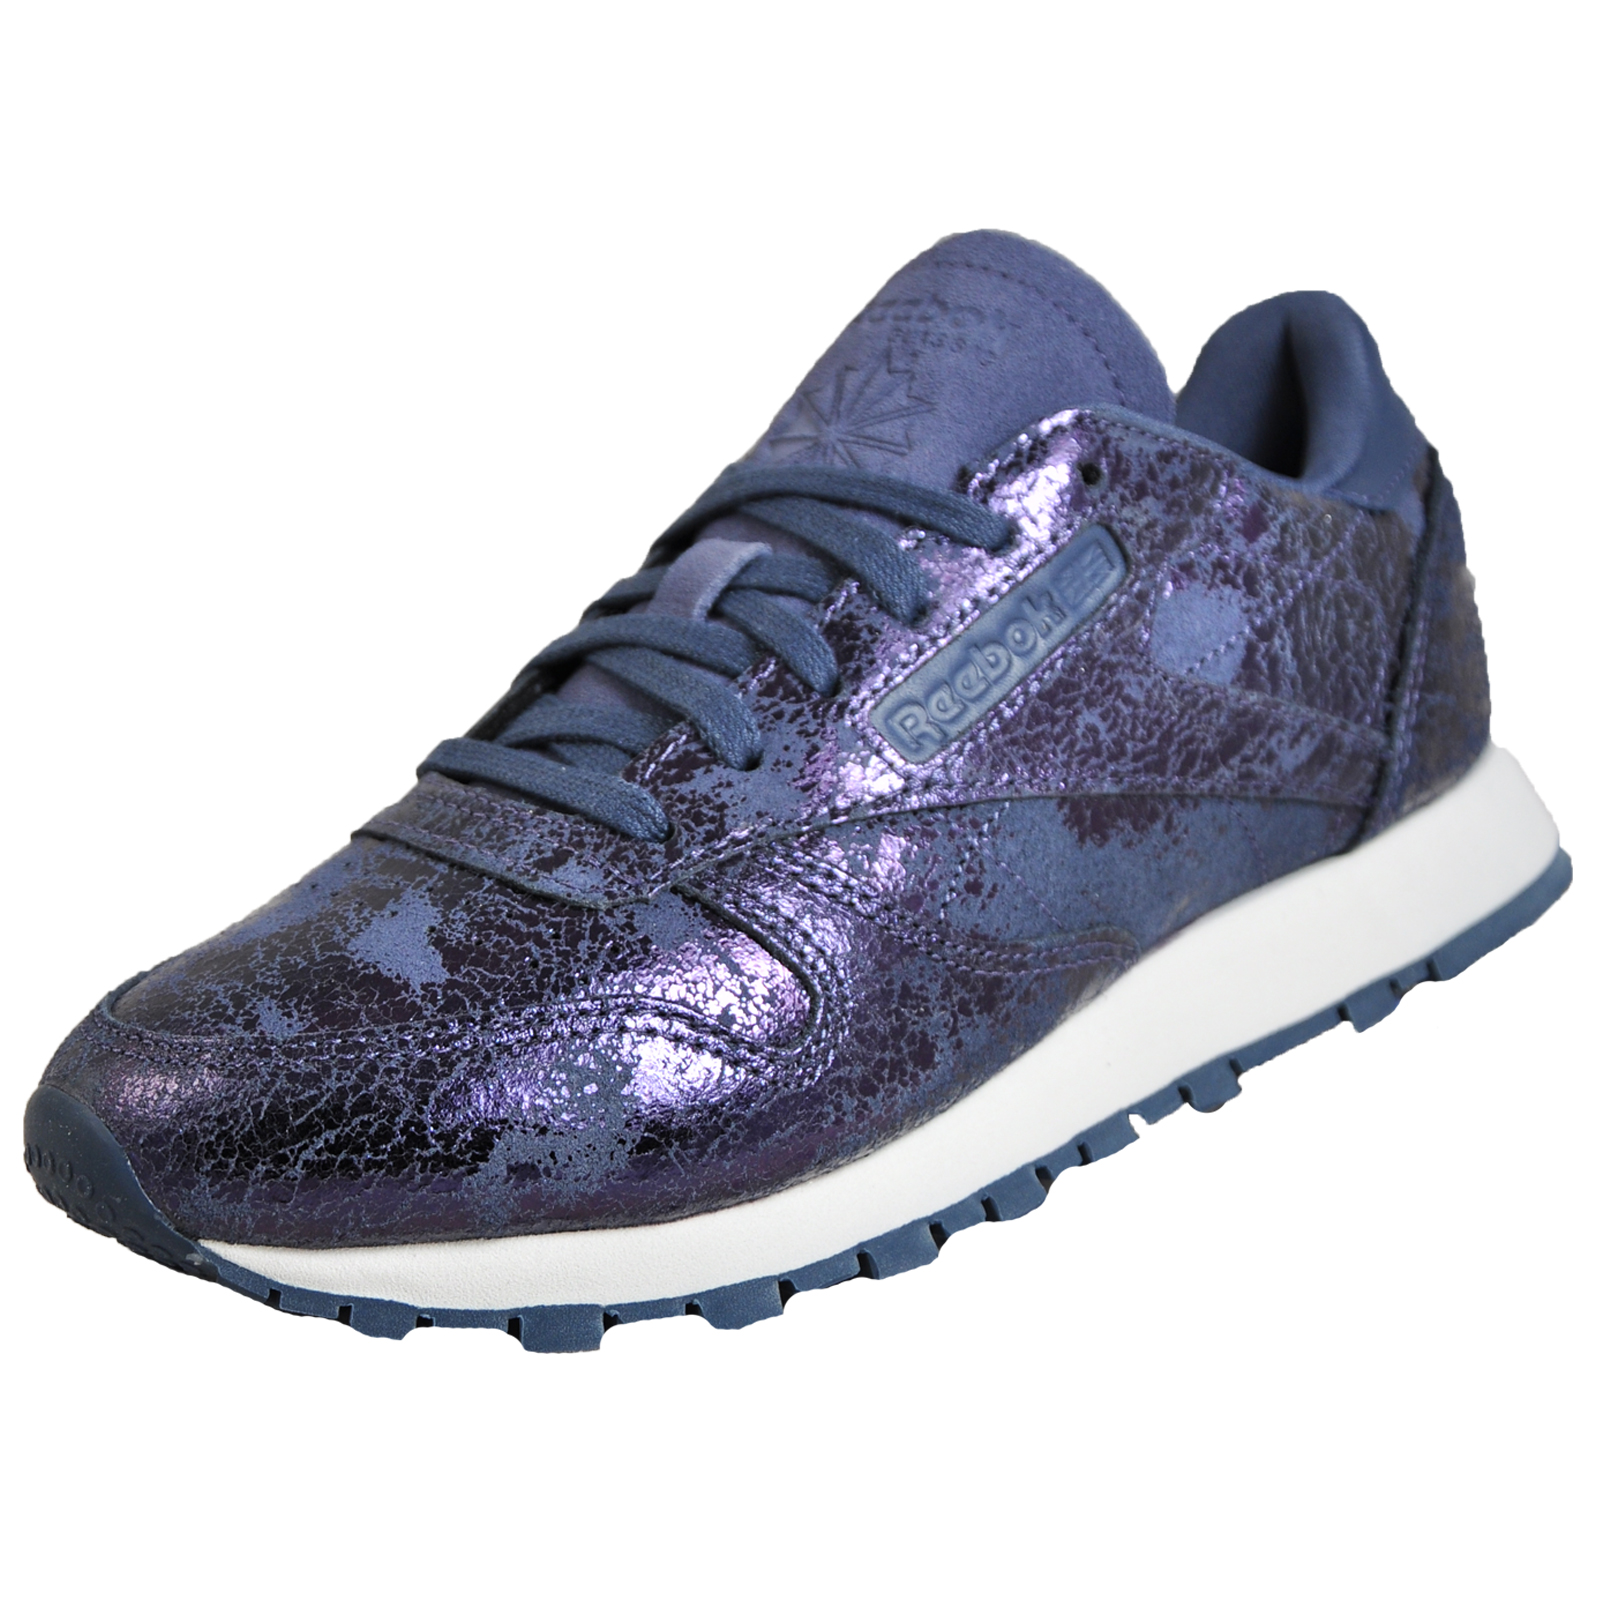 22c7fd871 Reebok Classic CL Leather Hype Women s Casual Retro Fashion Trainers ...